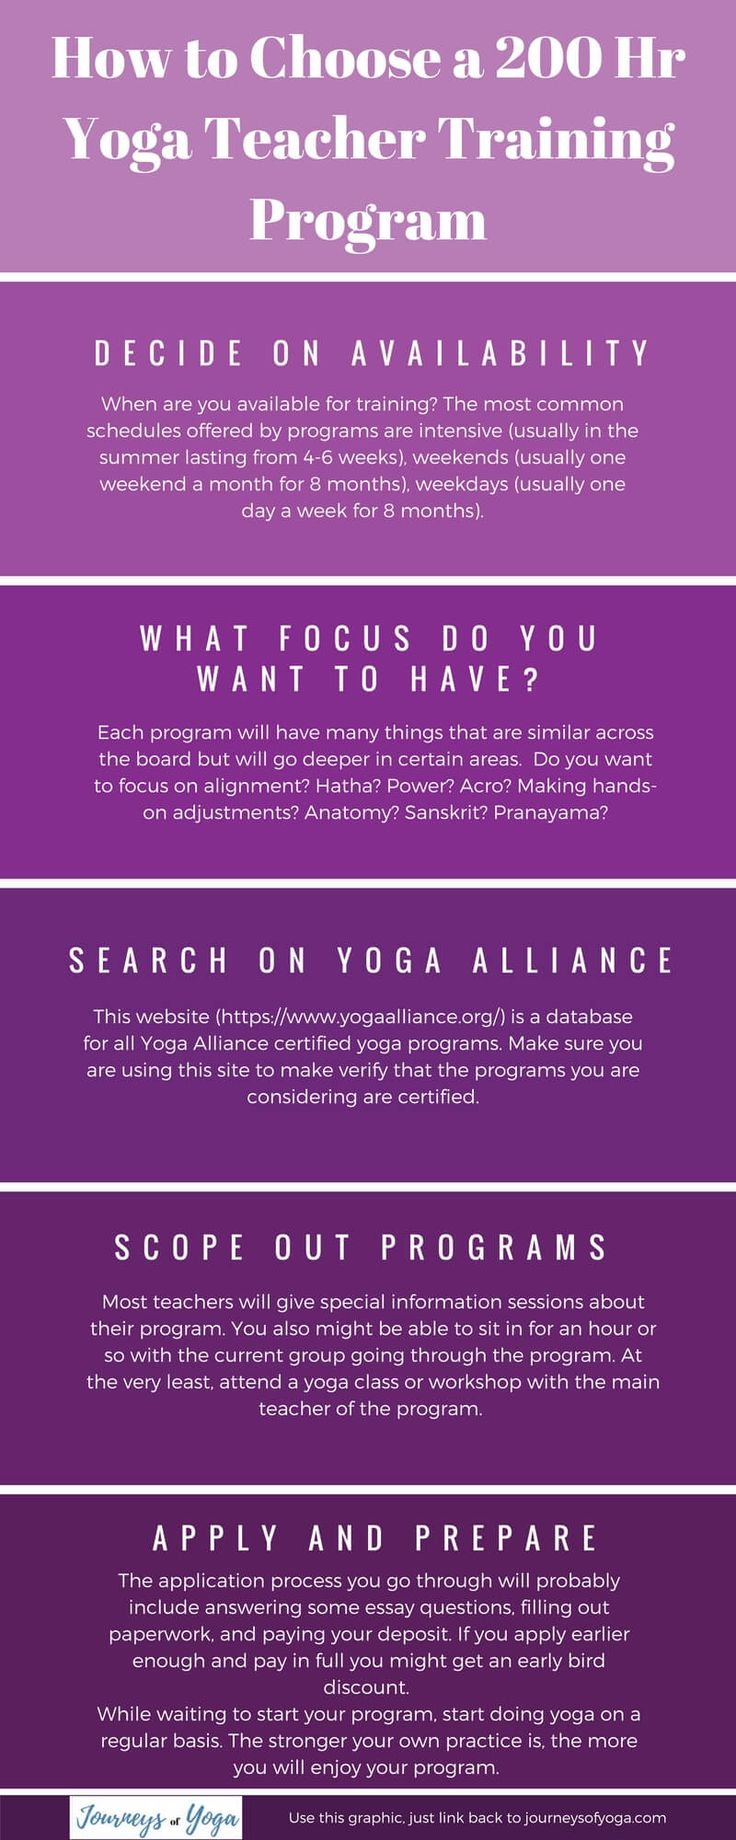 best yoga teacher training ideas yoga teacher  how to choose a yoga teacher training program